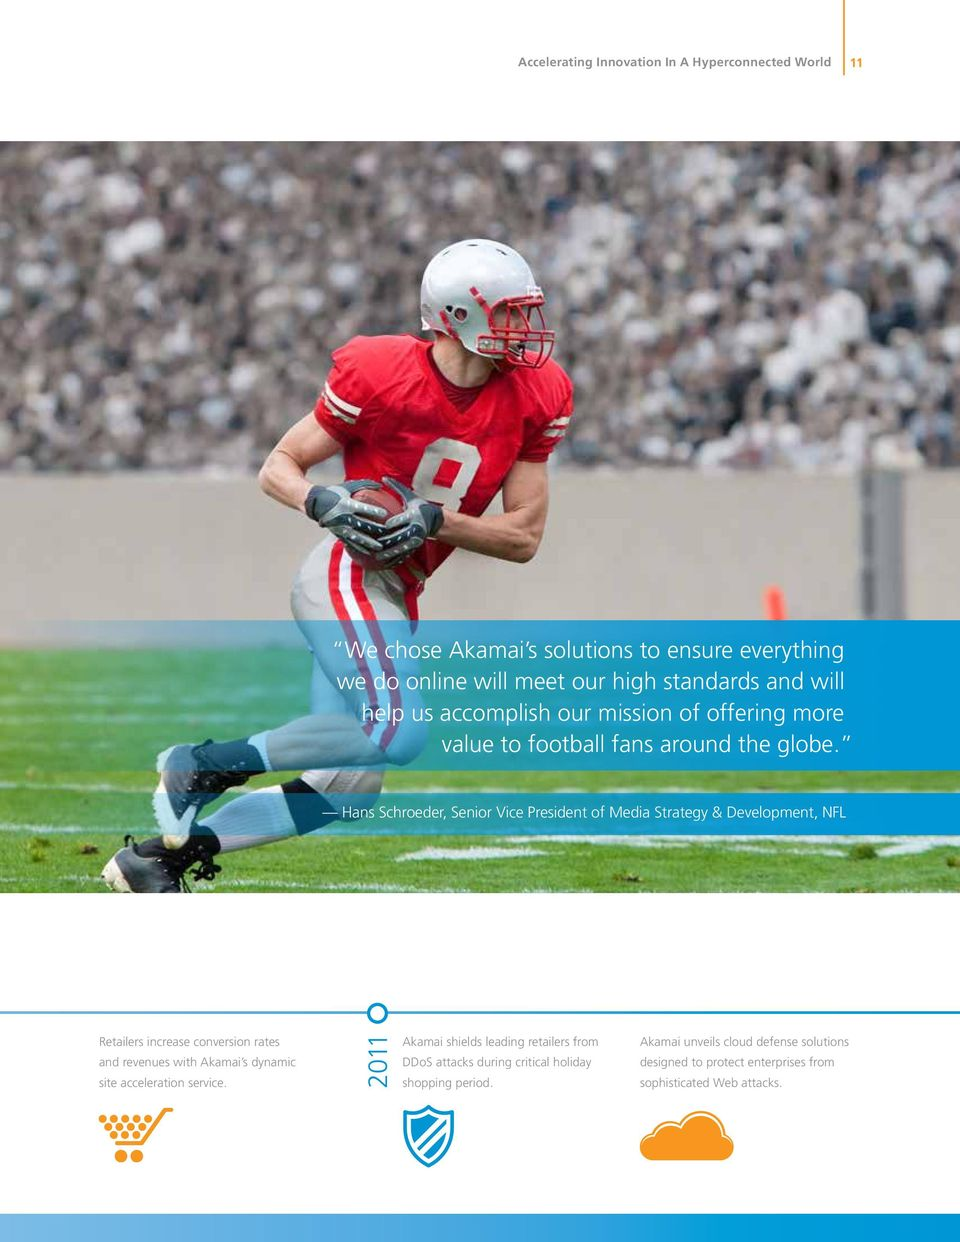 Hans Schroeder, Senior Vice President of Media Strategy & Development, NFL Retailers increase conversion rates and revenues with Akamai s dynamic site